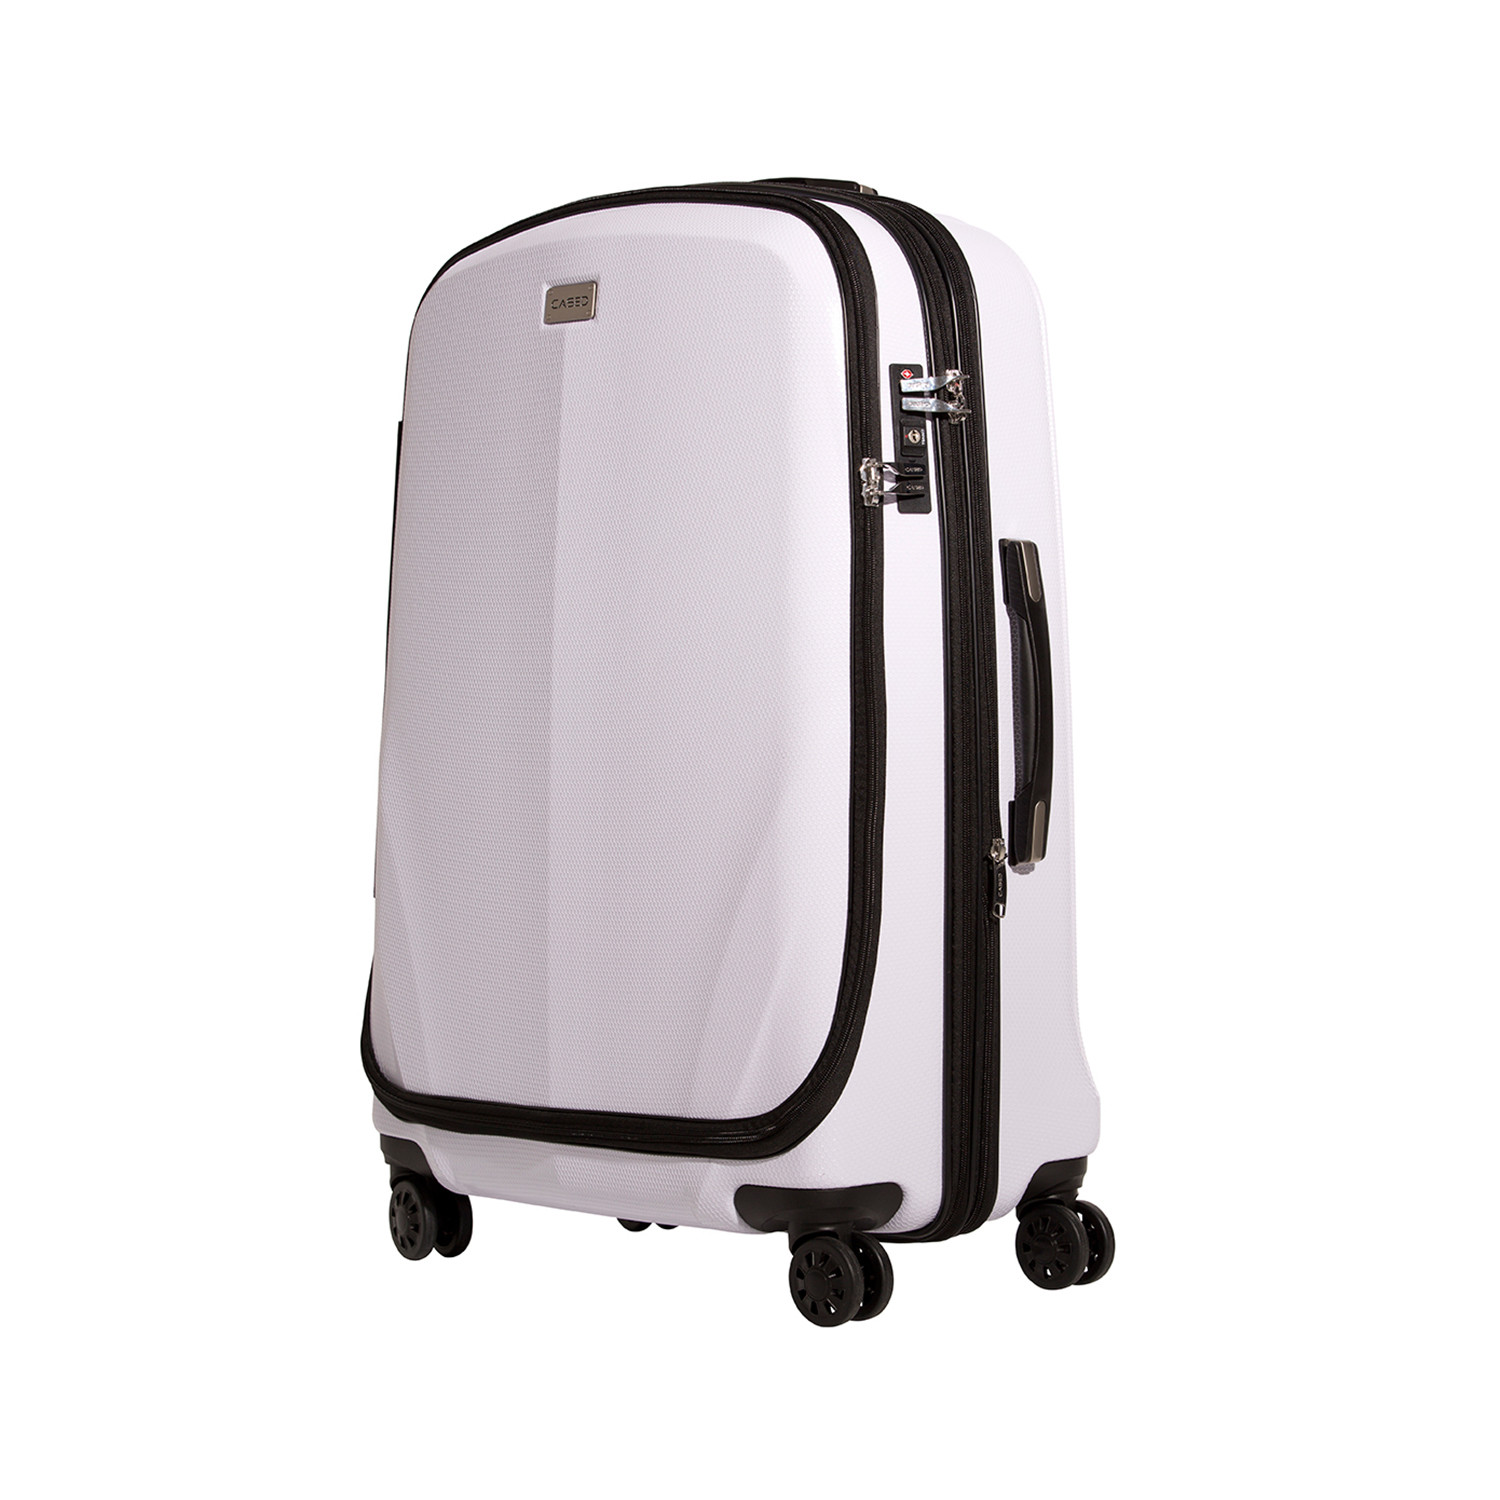 cased luggage  the ultimate traveling solution  touch of modern - cased luggage  white (